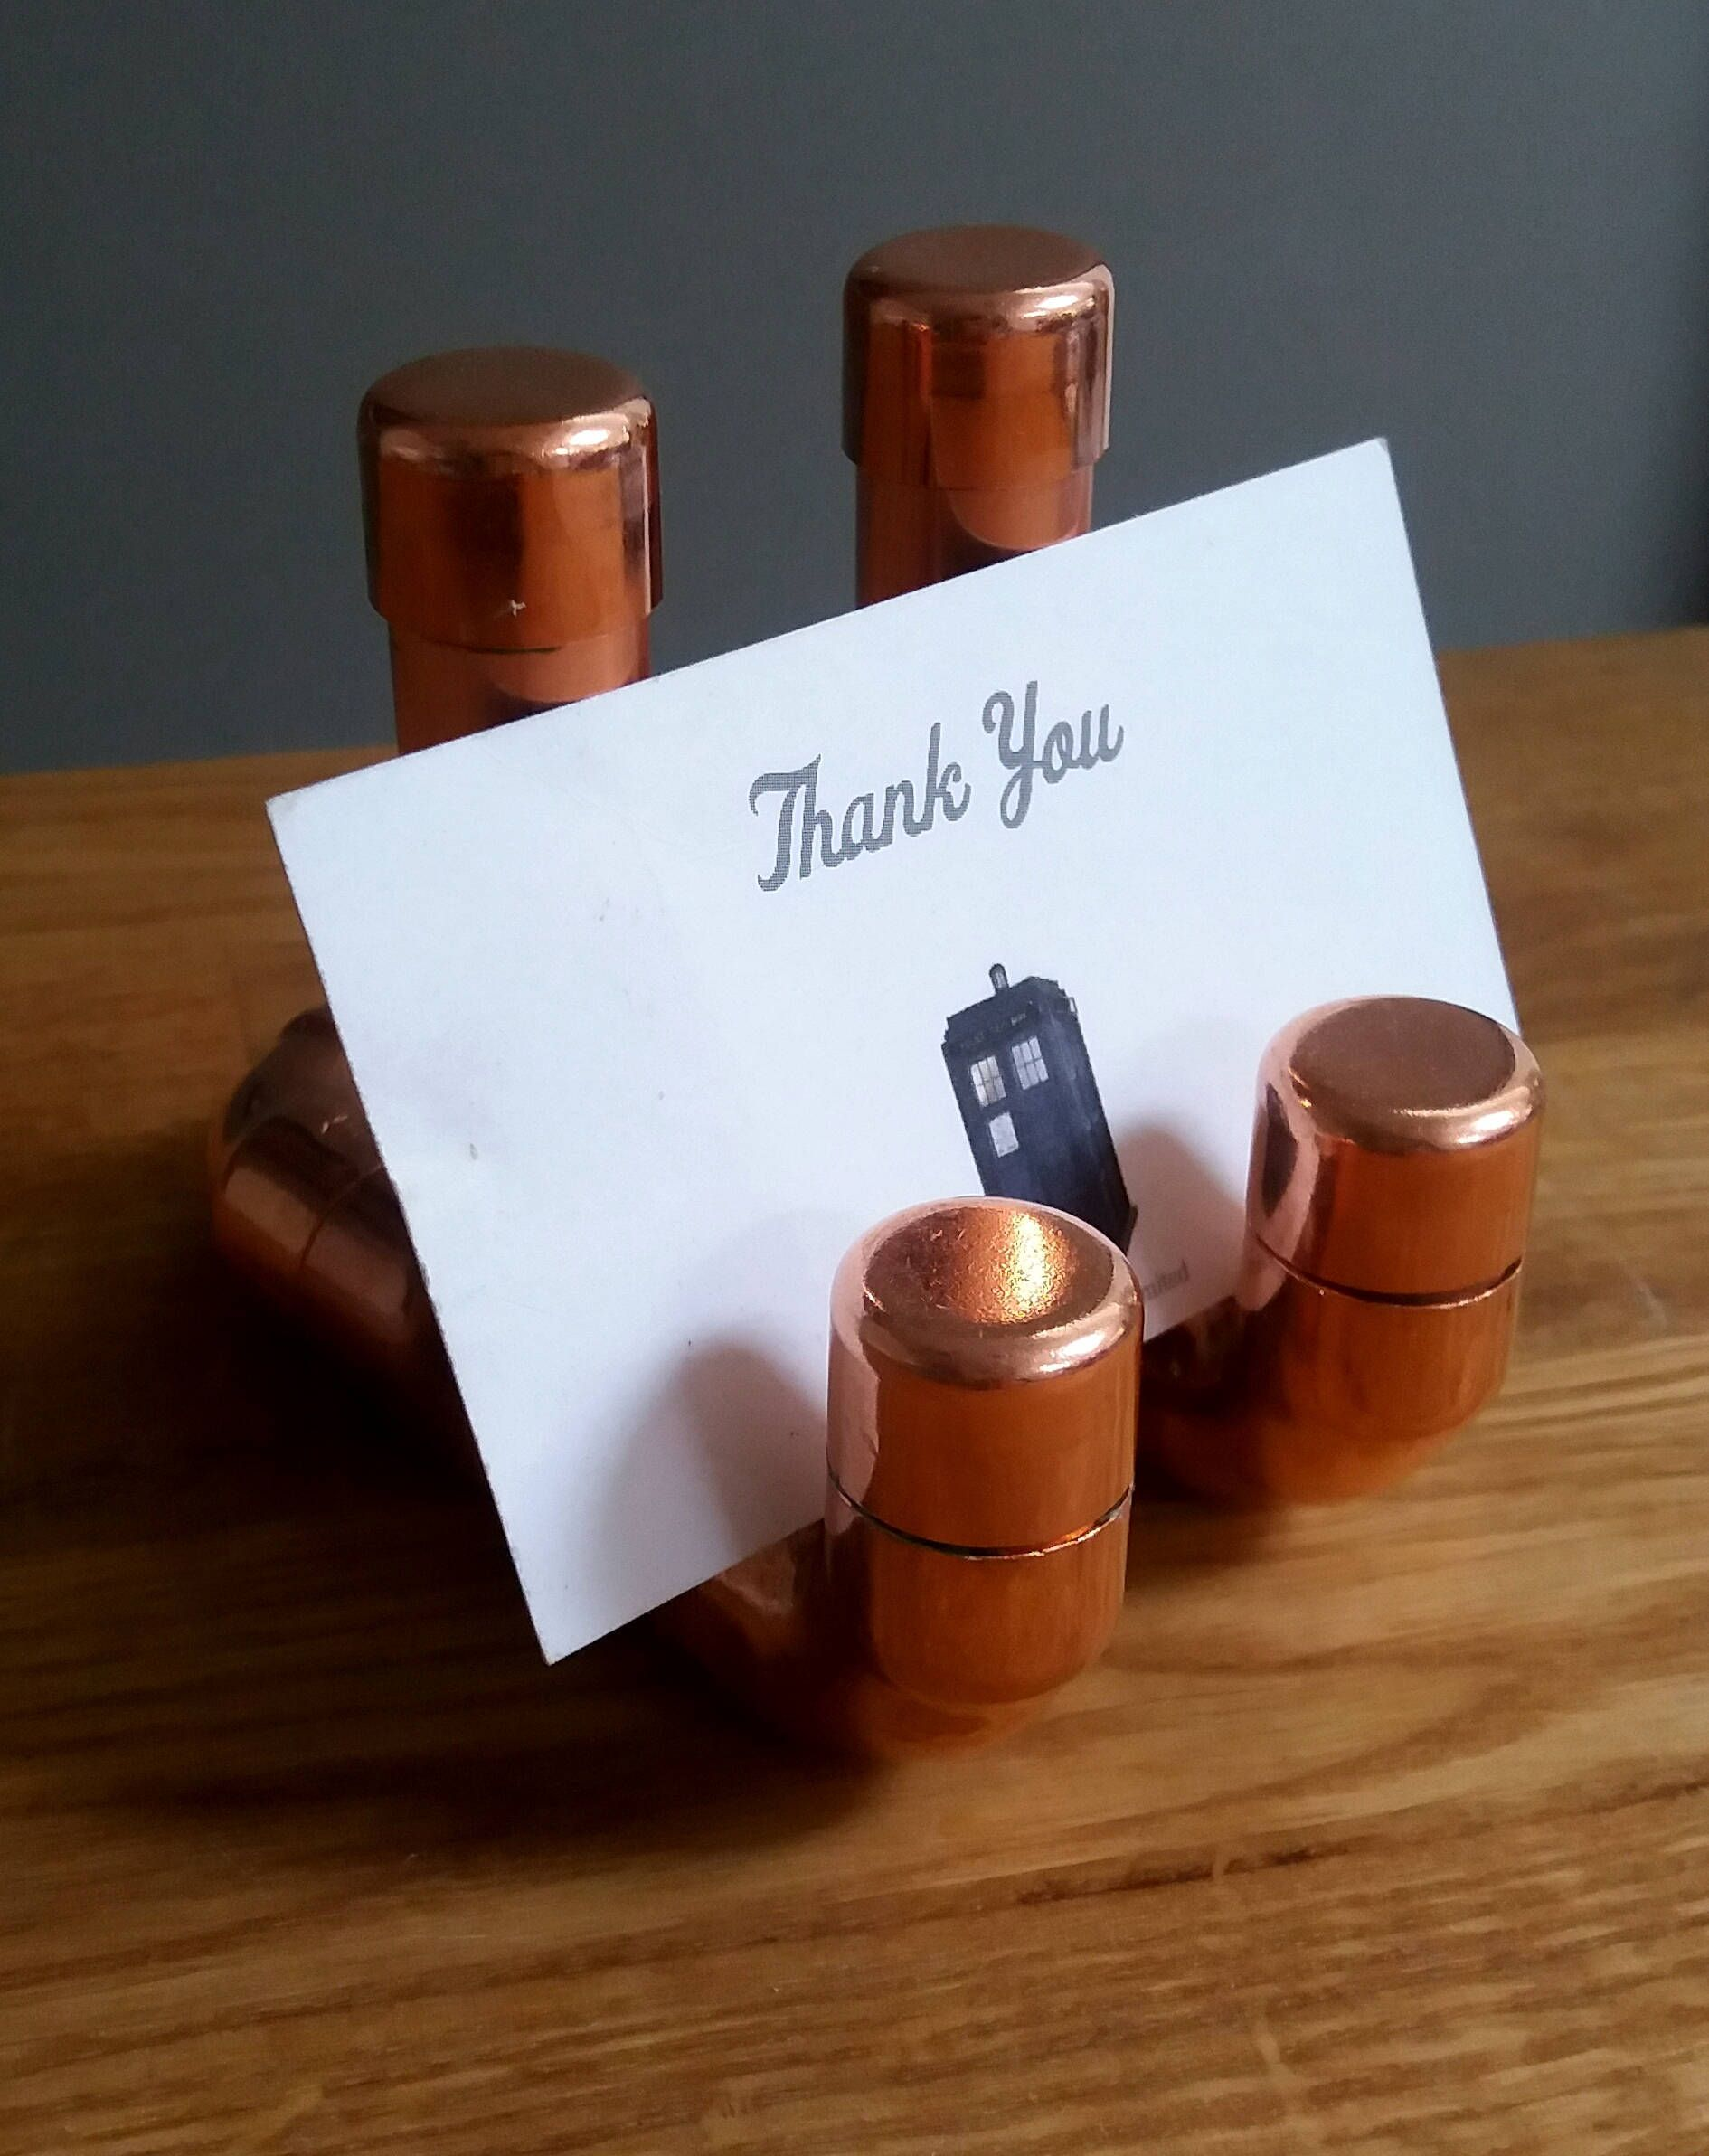 Copper pipe business card holder stand by SnugandStyle on Etsy ...